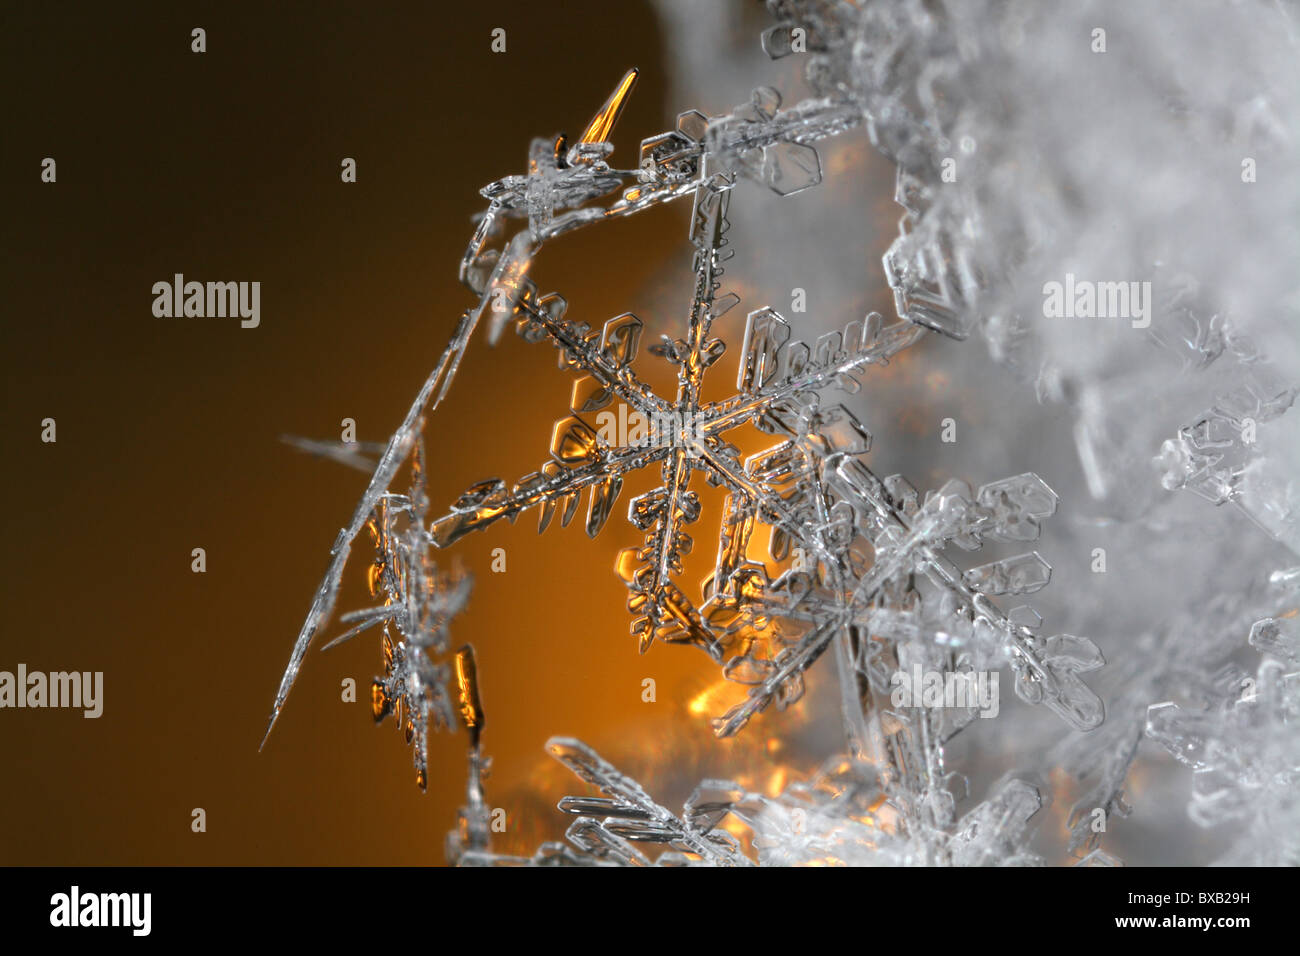 Snow flakes, extreme close-up - Stock Image